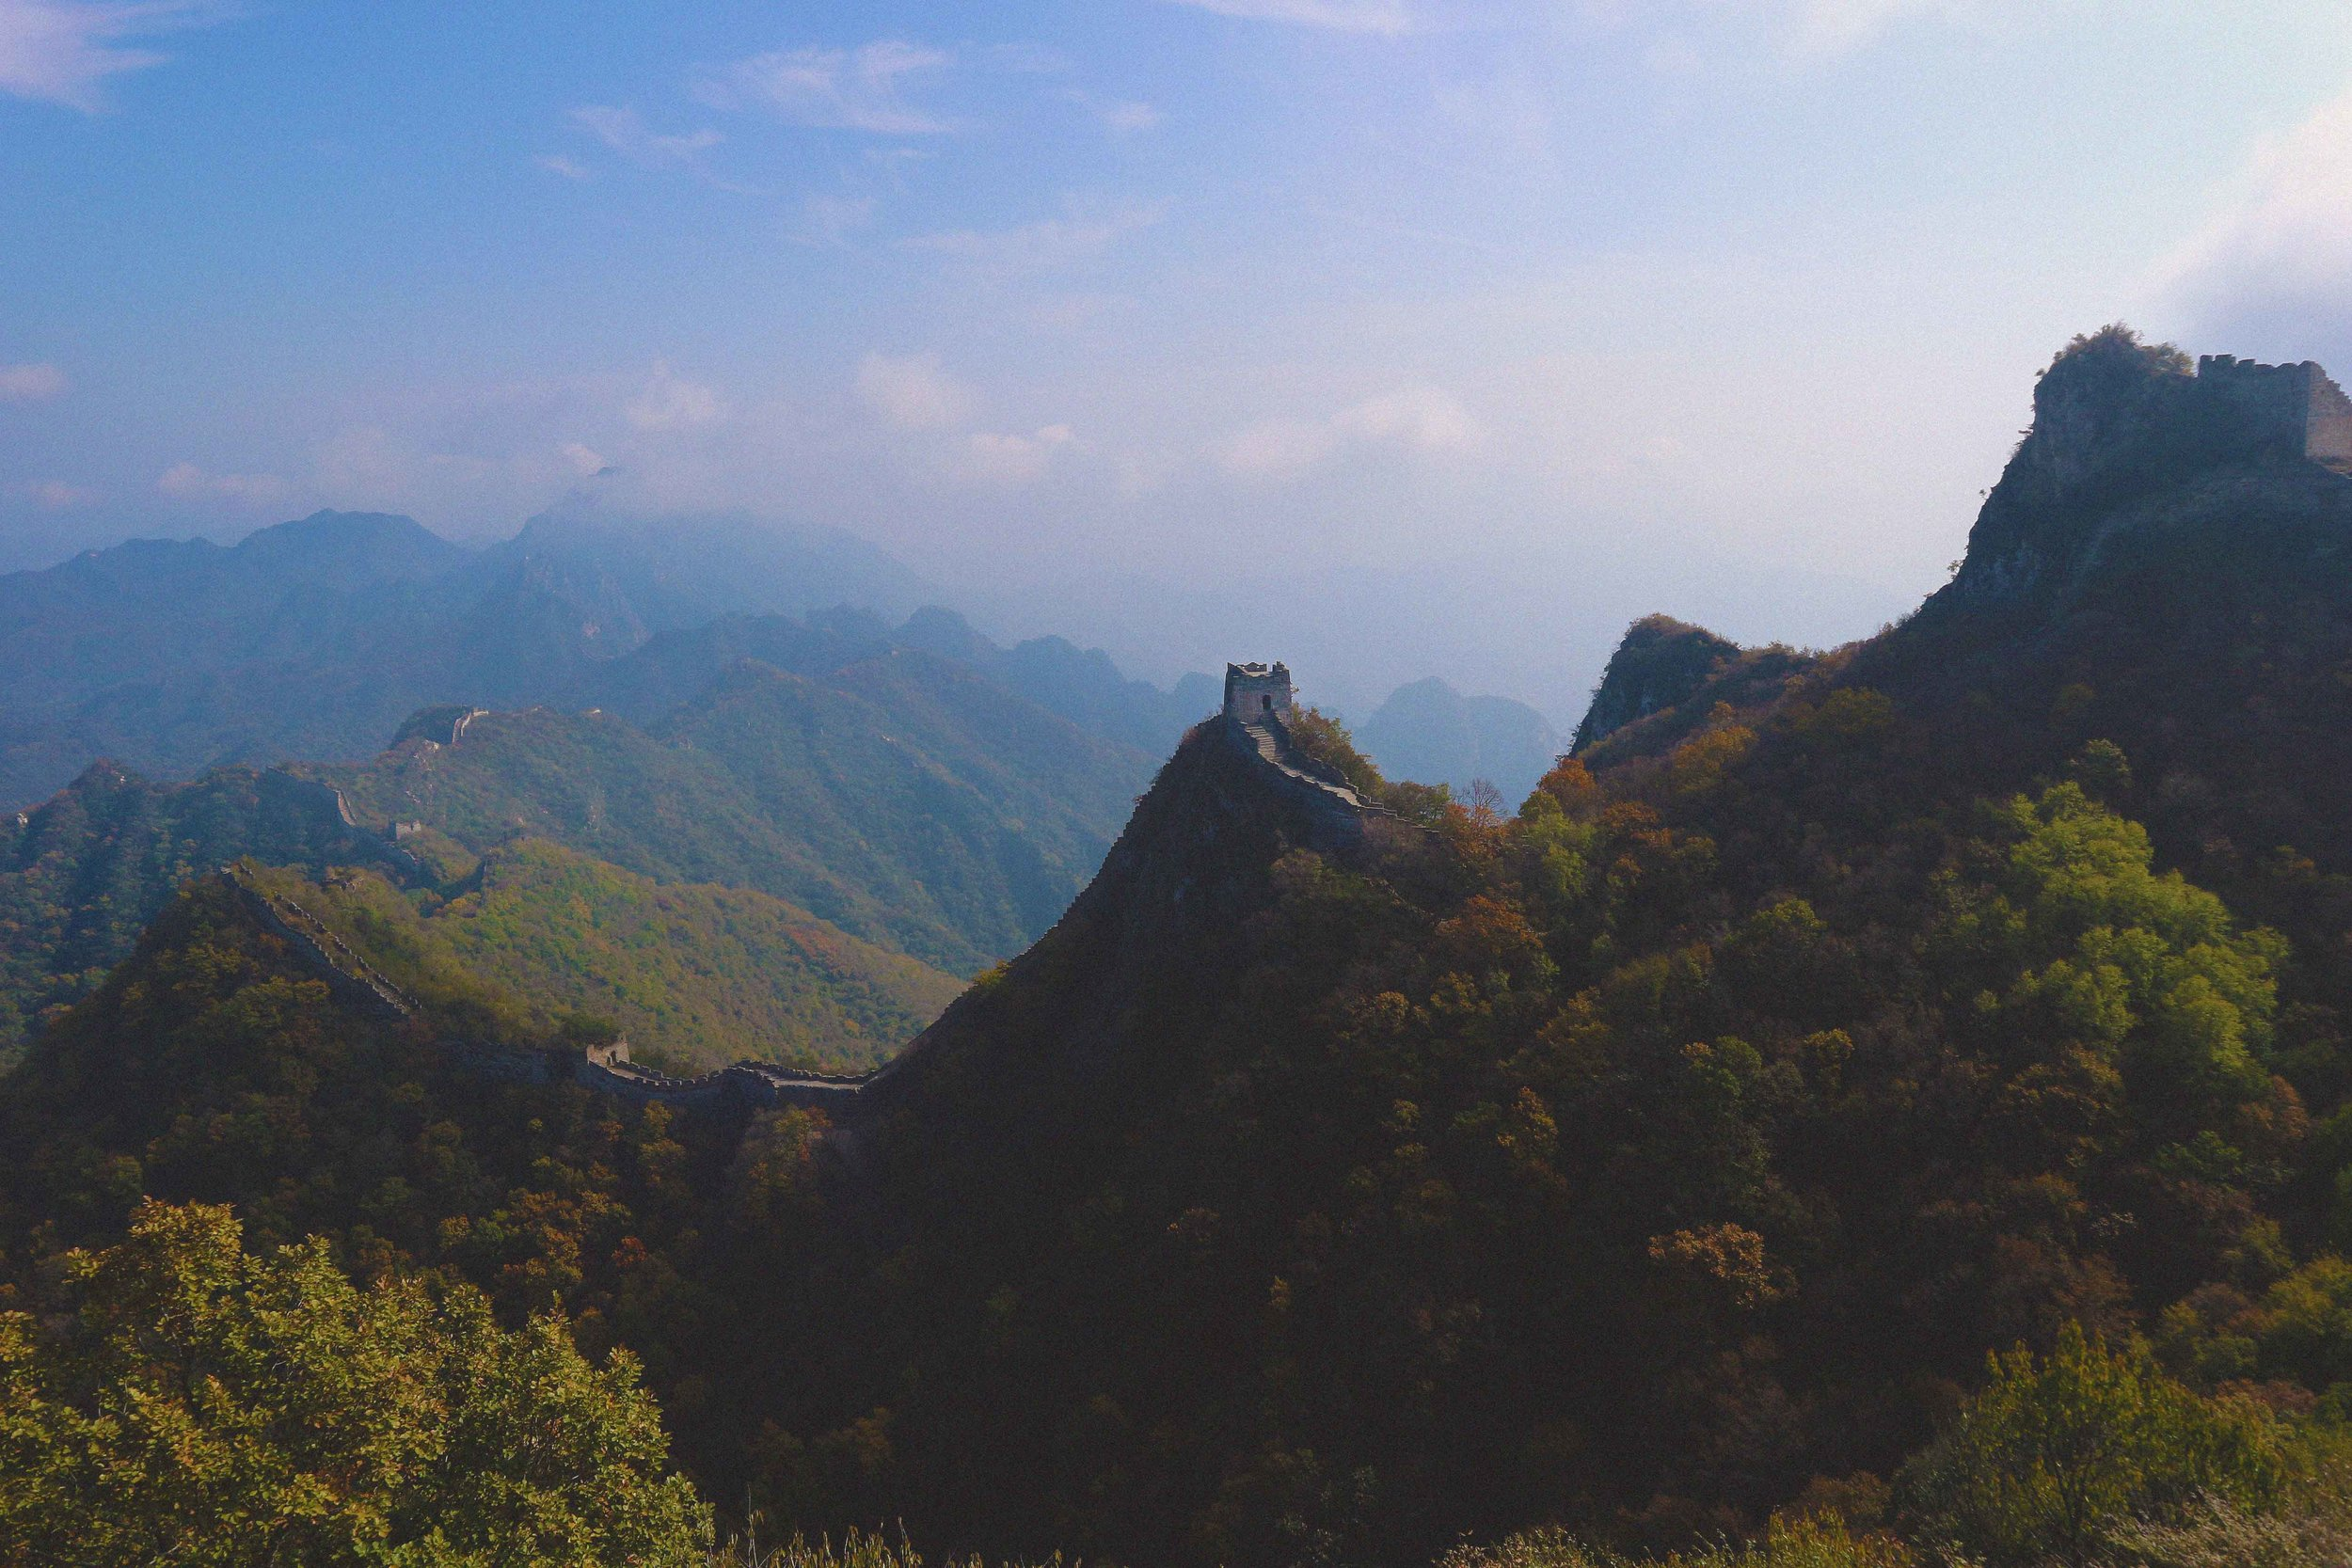 Trekking the Jiankou section of The Great Wall